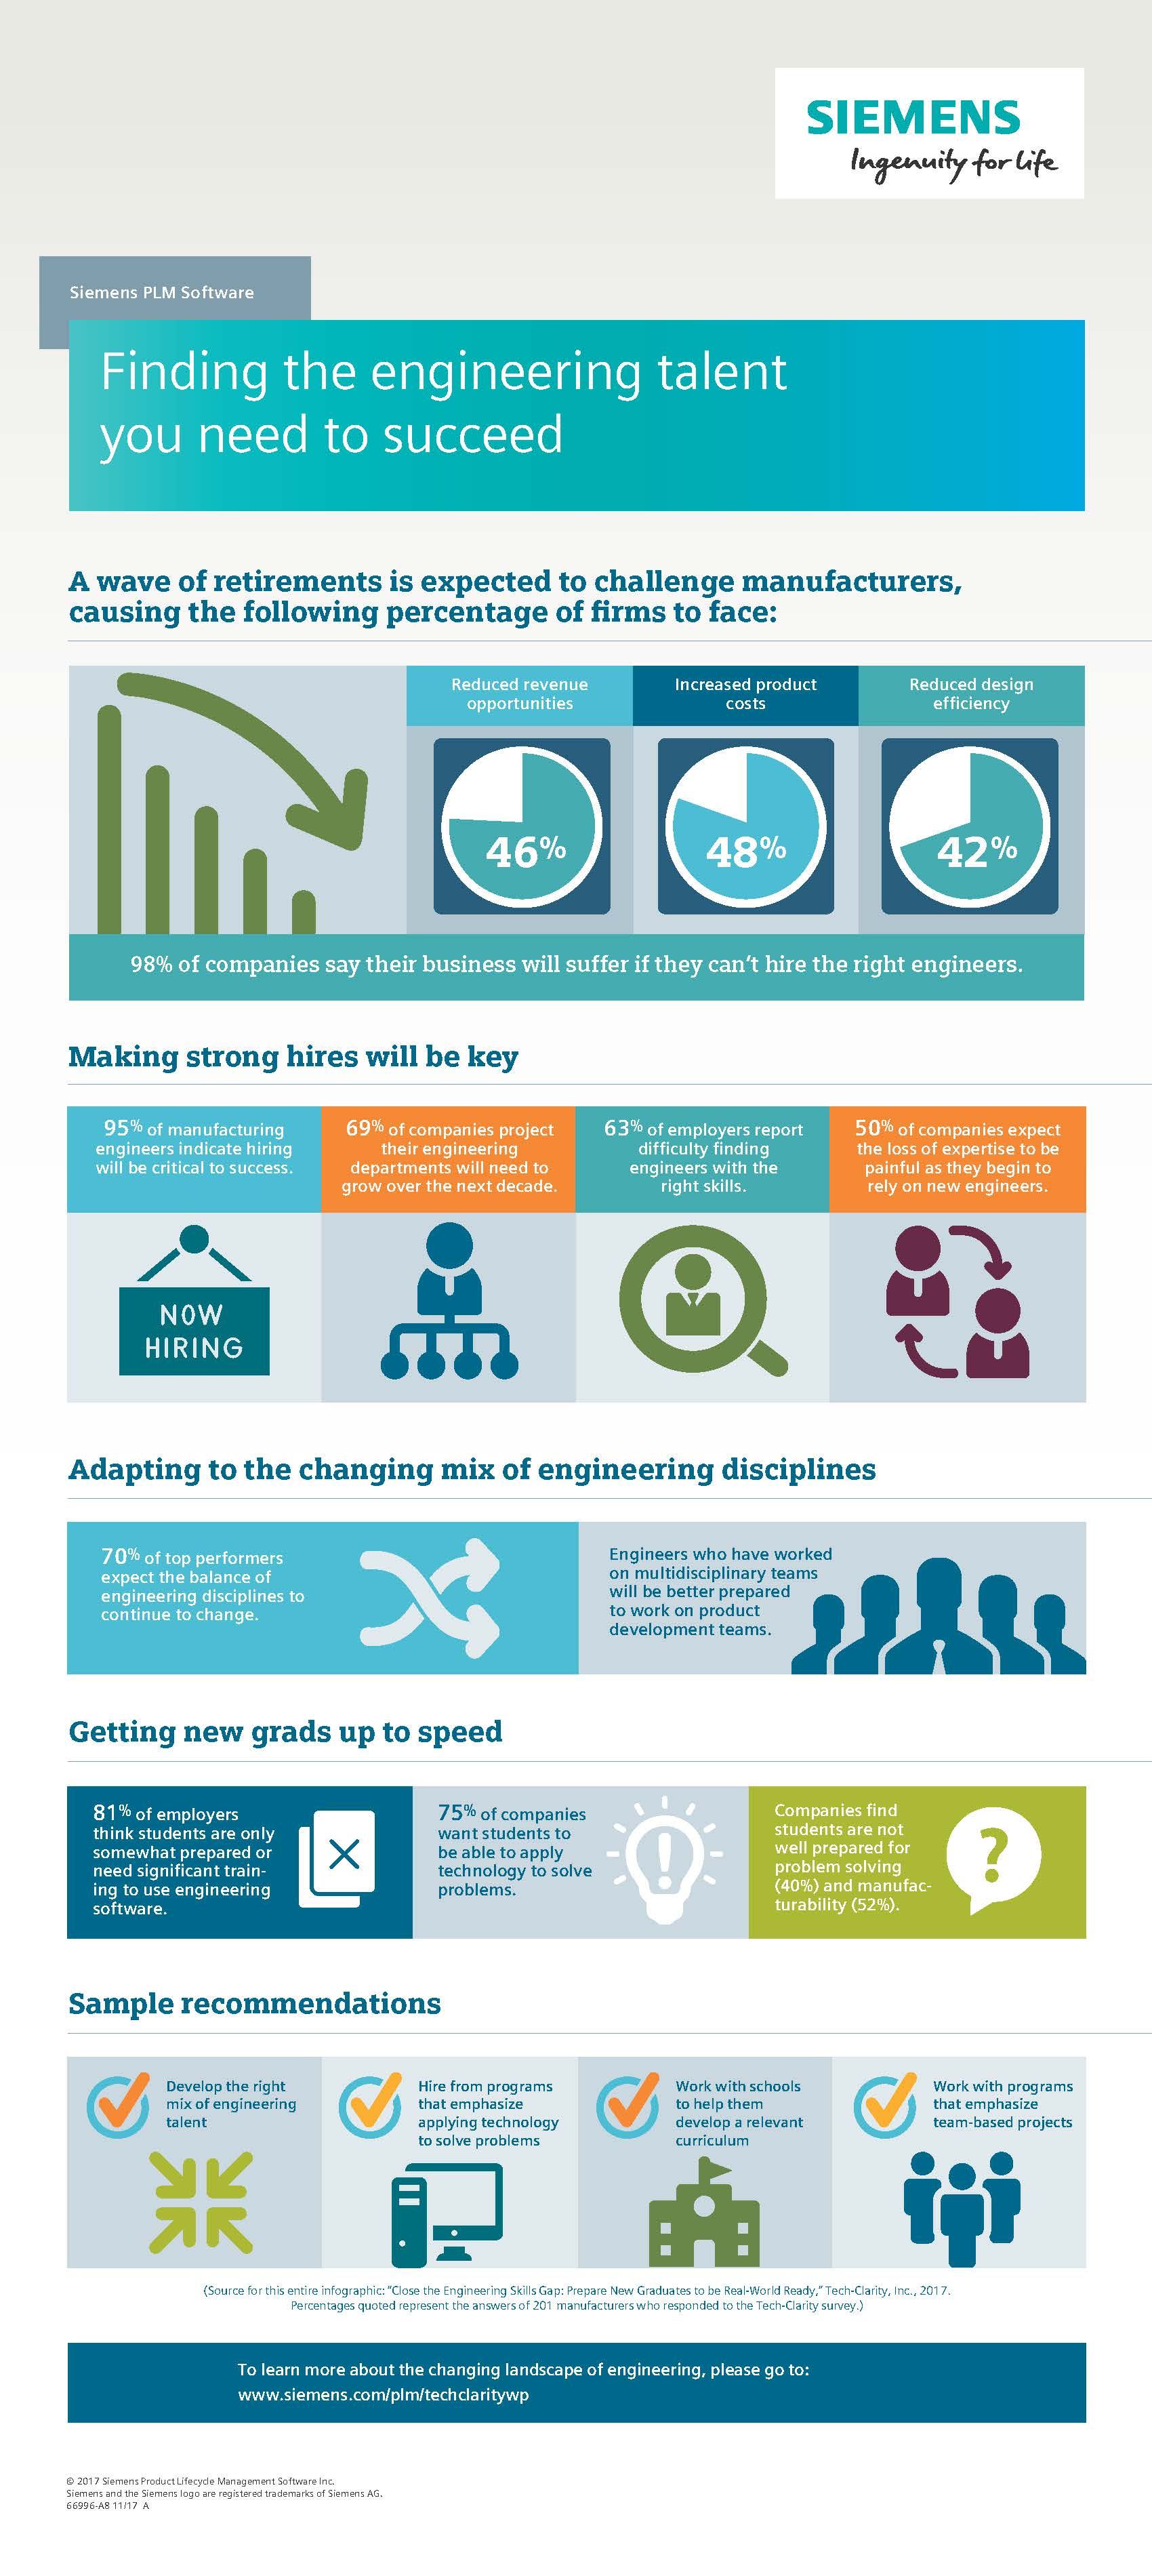 Siemens-PLM-Finding-the-engineering-talent-you-need-to-succeed-infographic-66959_tcm1023-259955.jpg